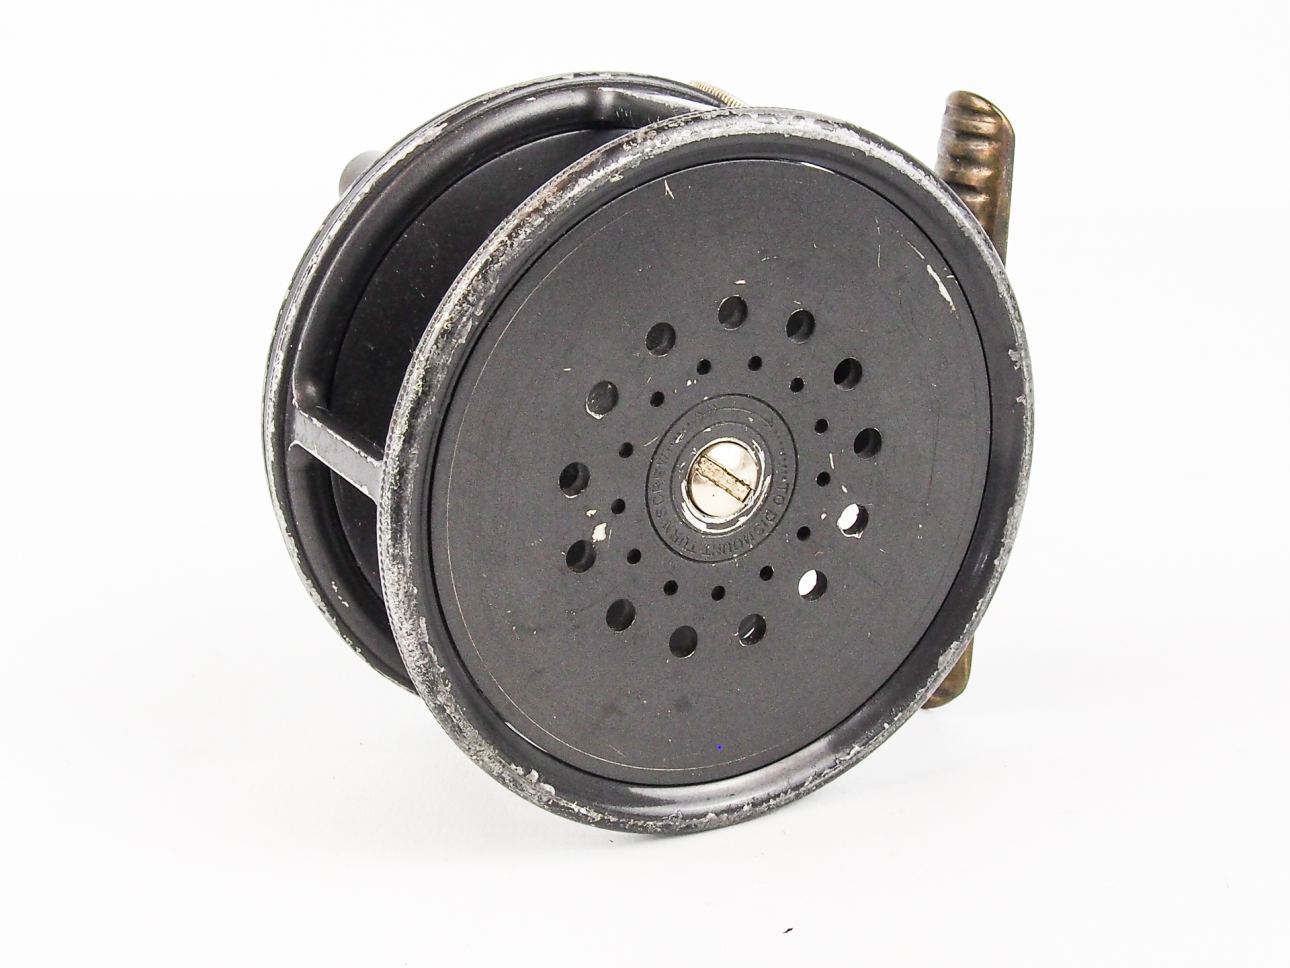 Hardy 3 3 4 perfect salmon fly reel vintage fishing tackle for Salmon fishing reels